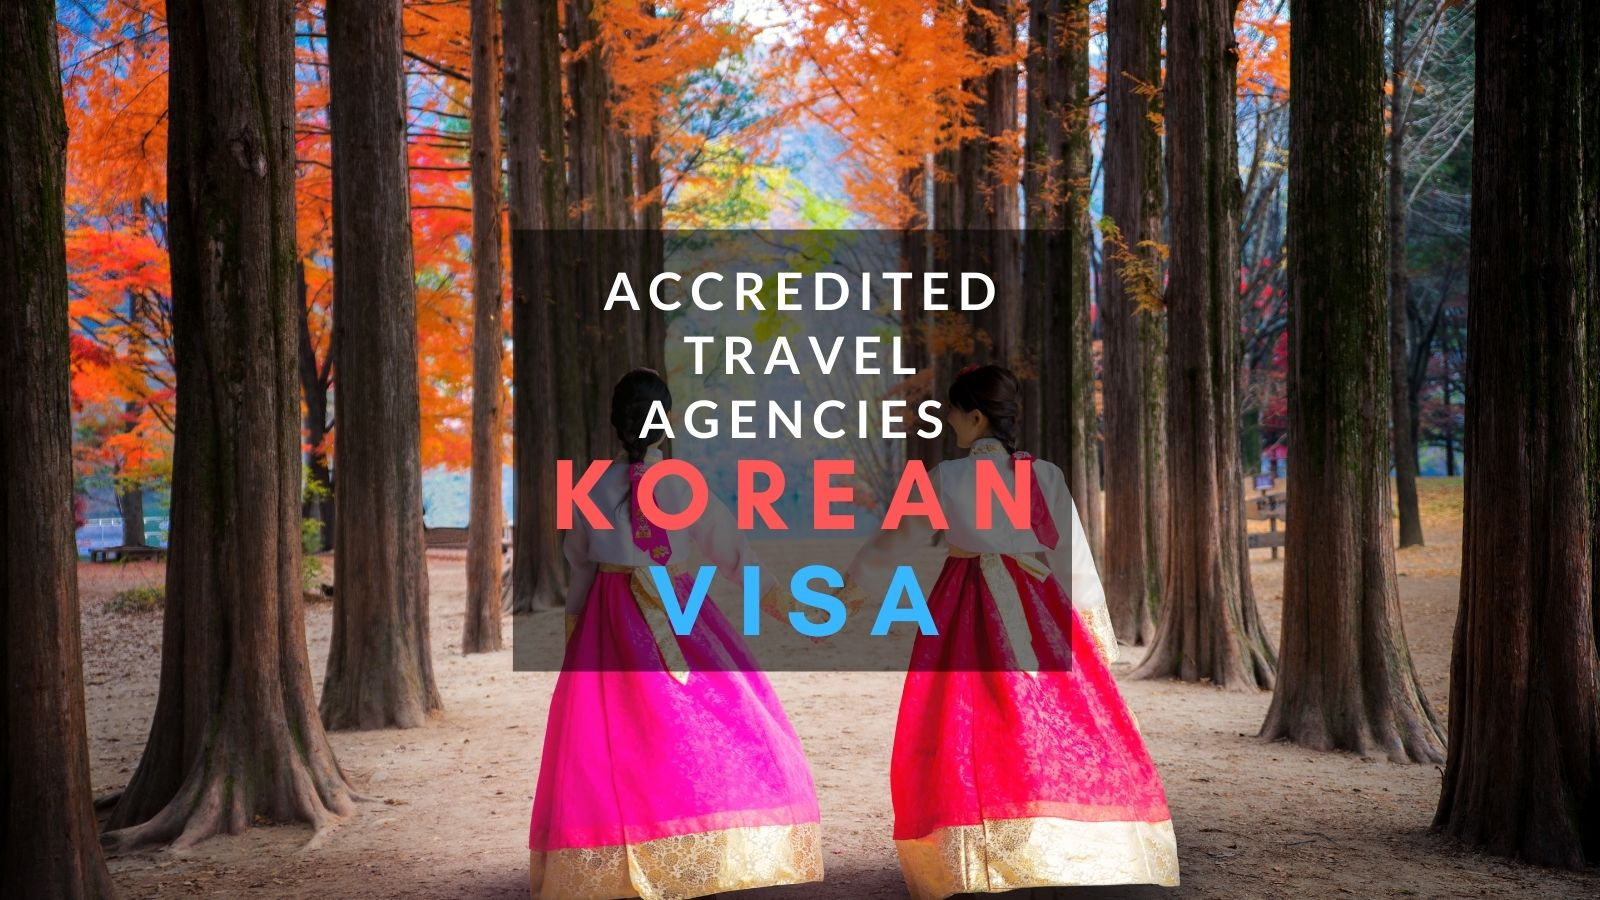 list of accredited travel agencies for korean tourist visa application philippines